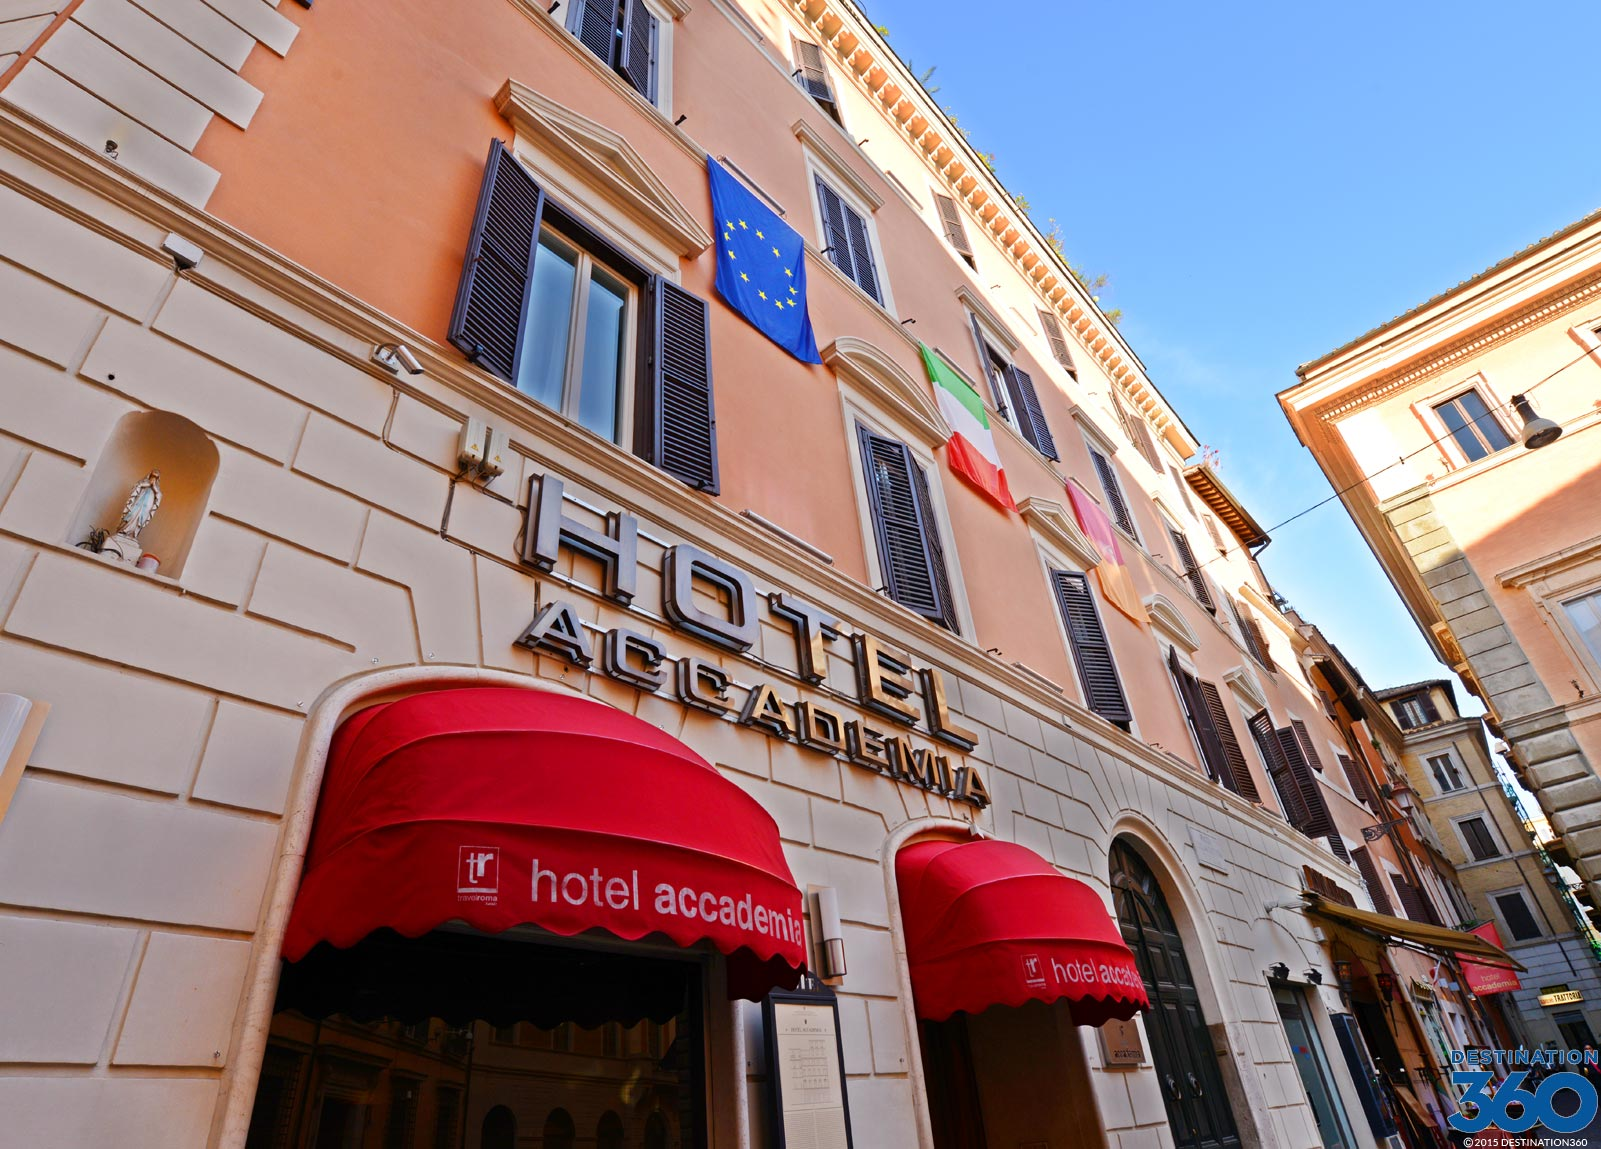 Three Star Hotel In 3 Star Rome Hotels - 3 Star Accommodation In Rome